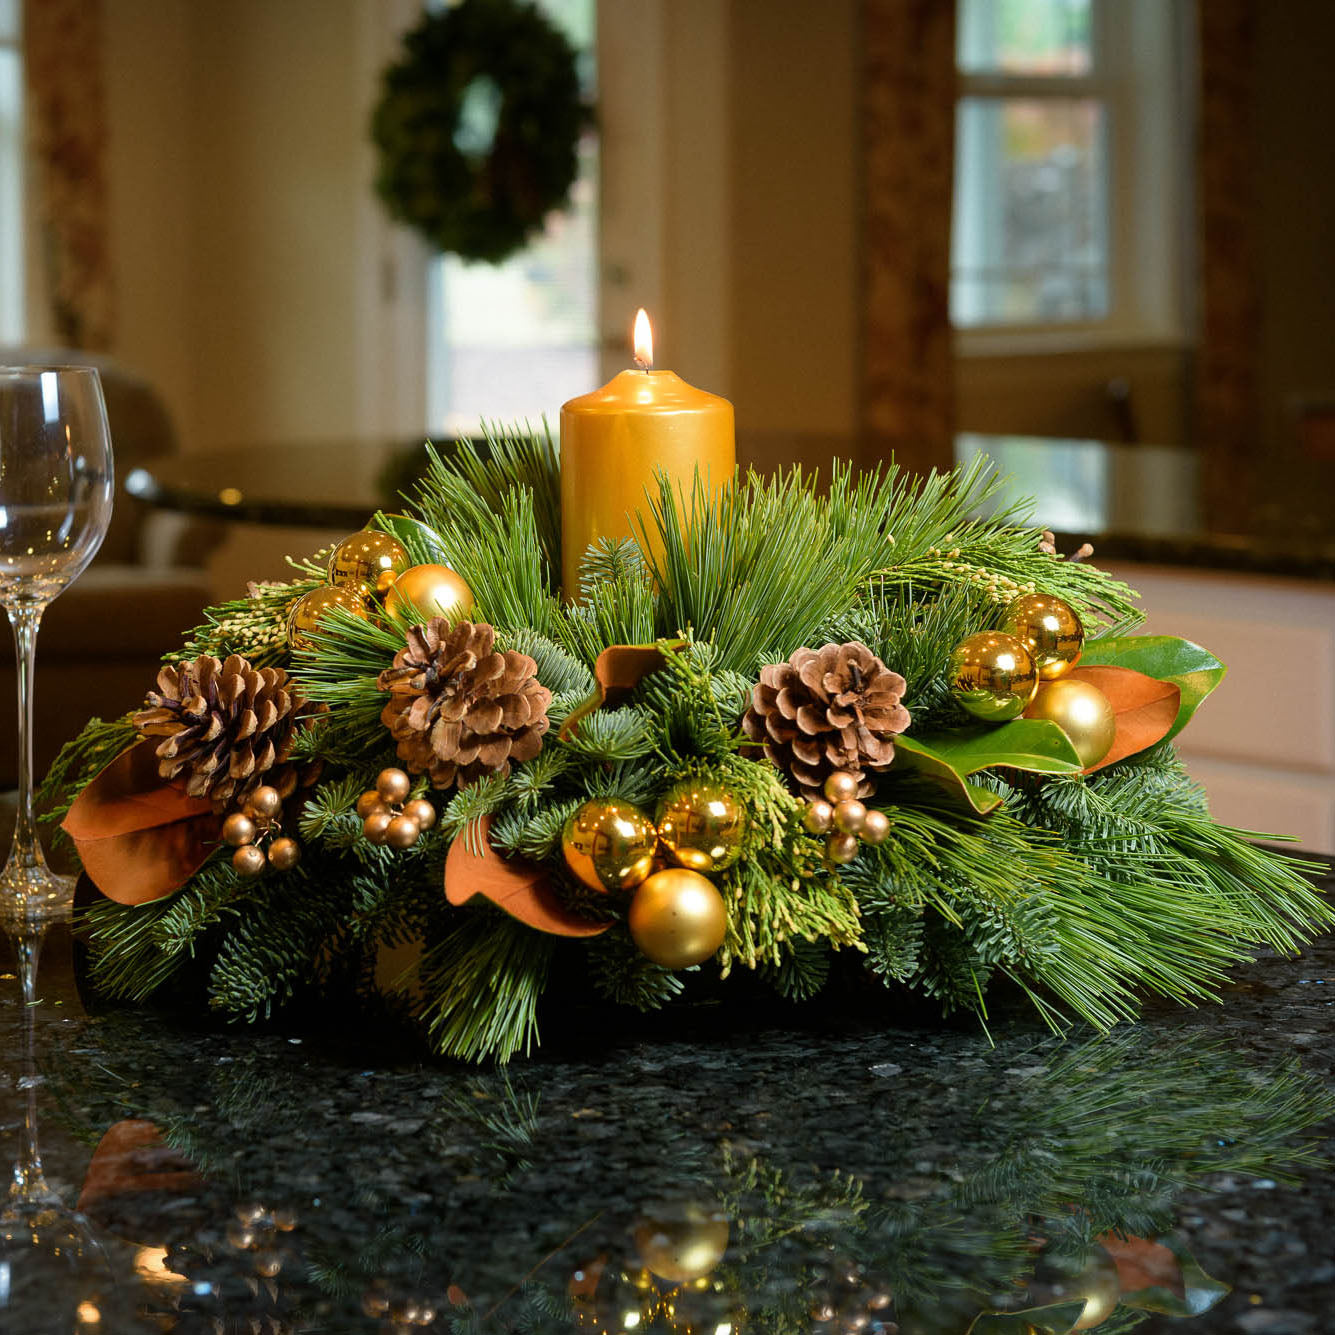 Golden magnolia centerpiece with pine cones, magnolia, gold balls and berries and a golden pillar candle on kitchen counter